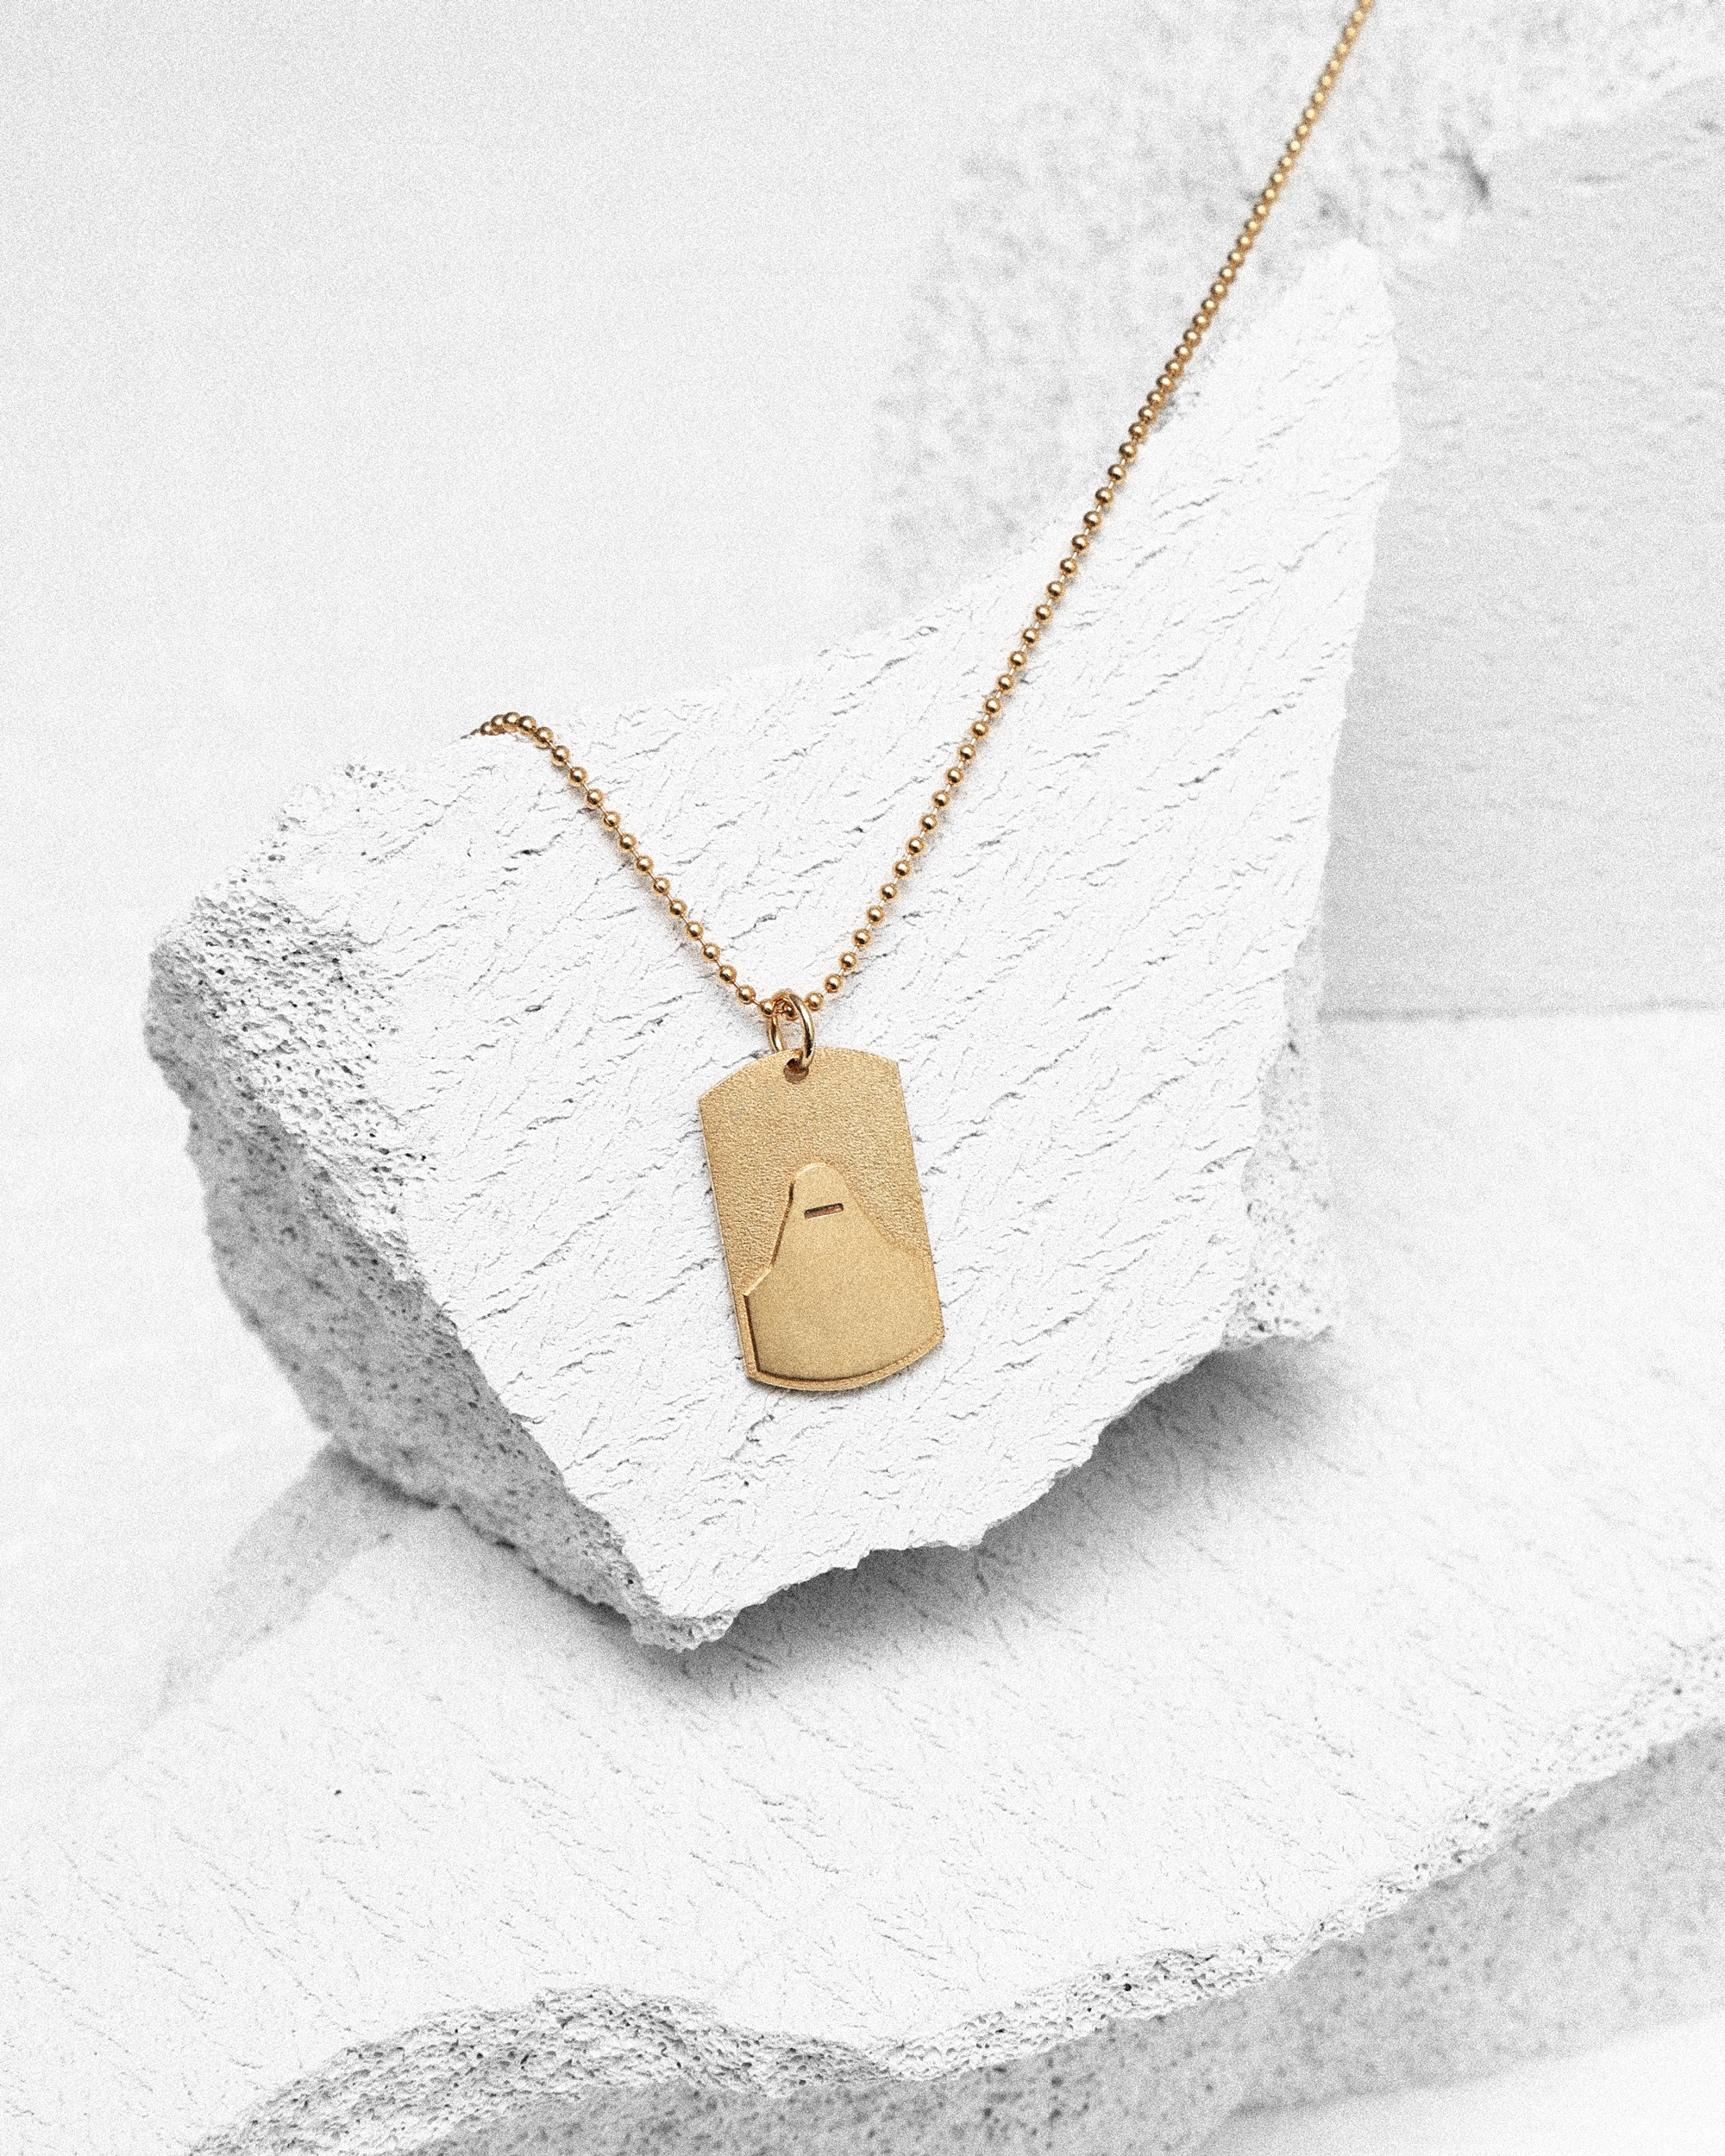 Sister-Necklace-Visual-24K-Gold-Plated-Silver.jpg